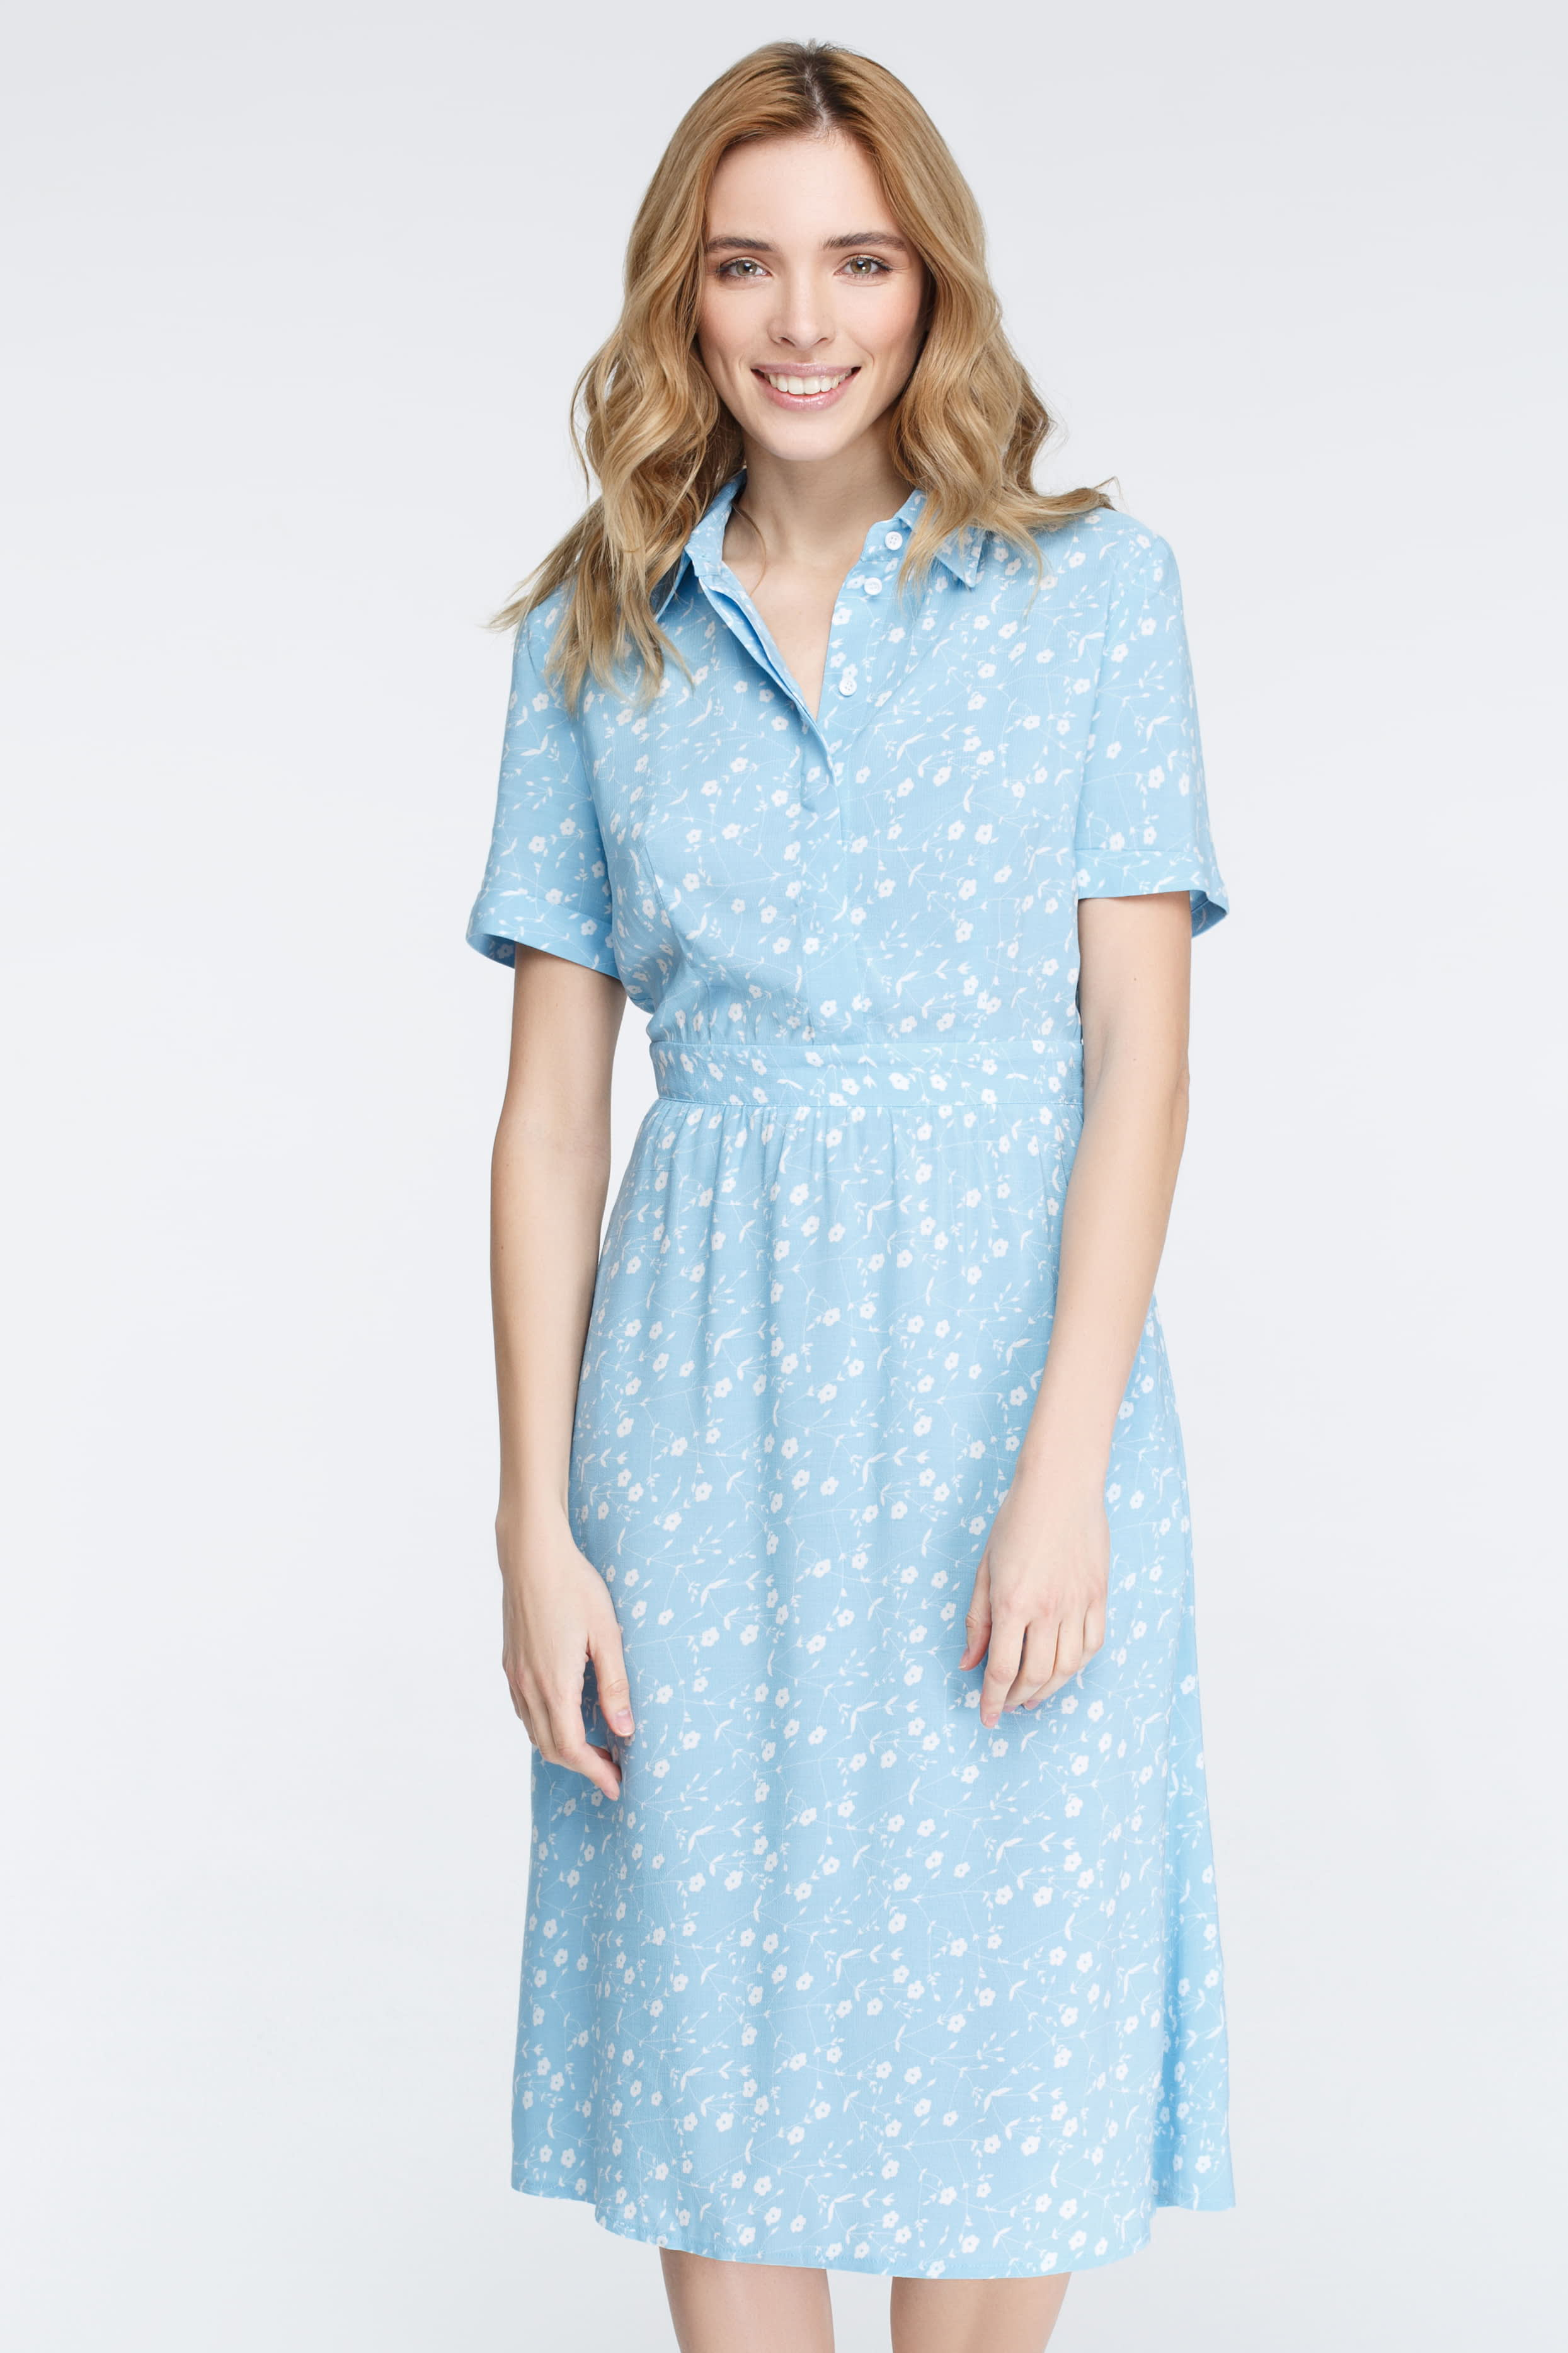 4d6b7d609ac Blue dress in print white flowers photo 3 - MustHave online store